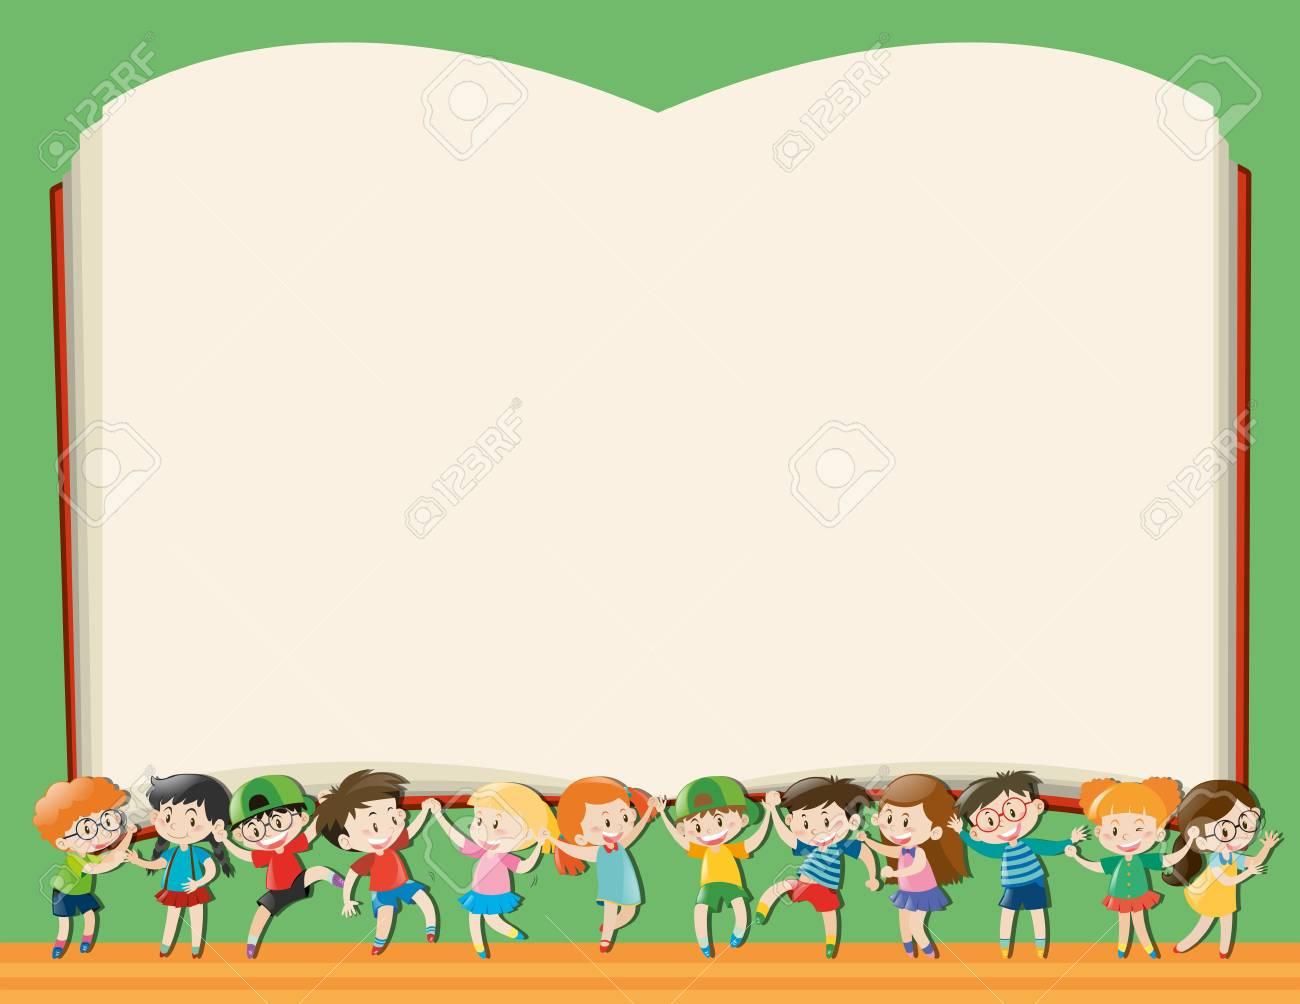 Background template with kids holding big book vector image.